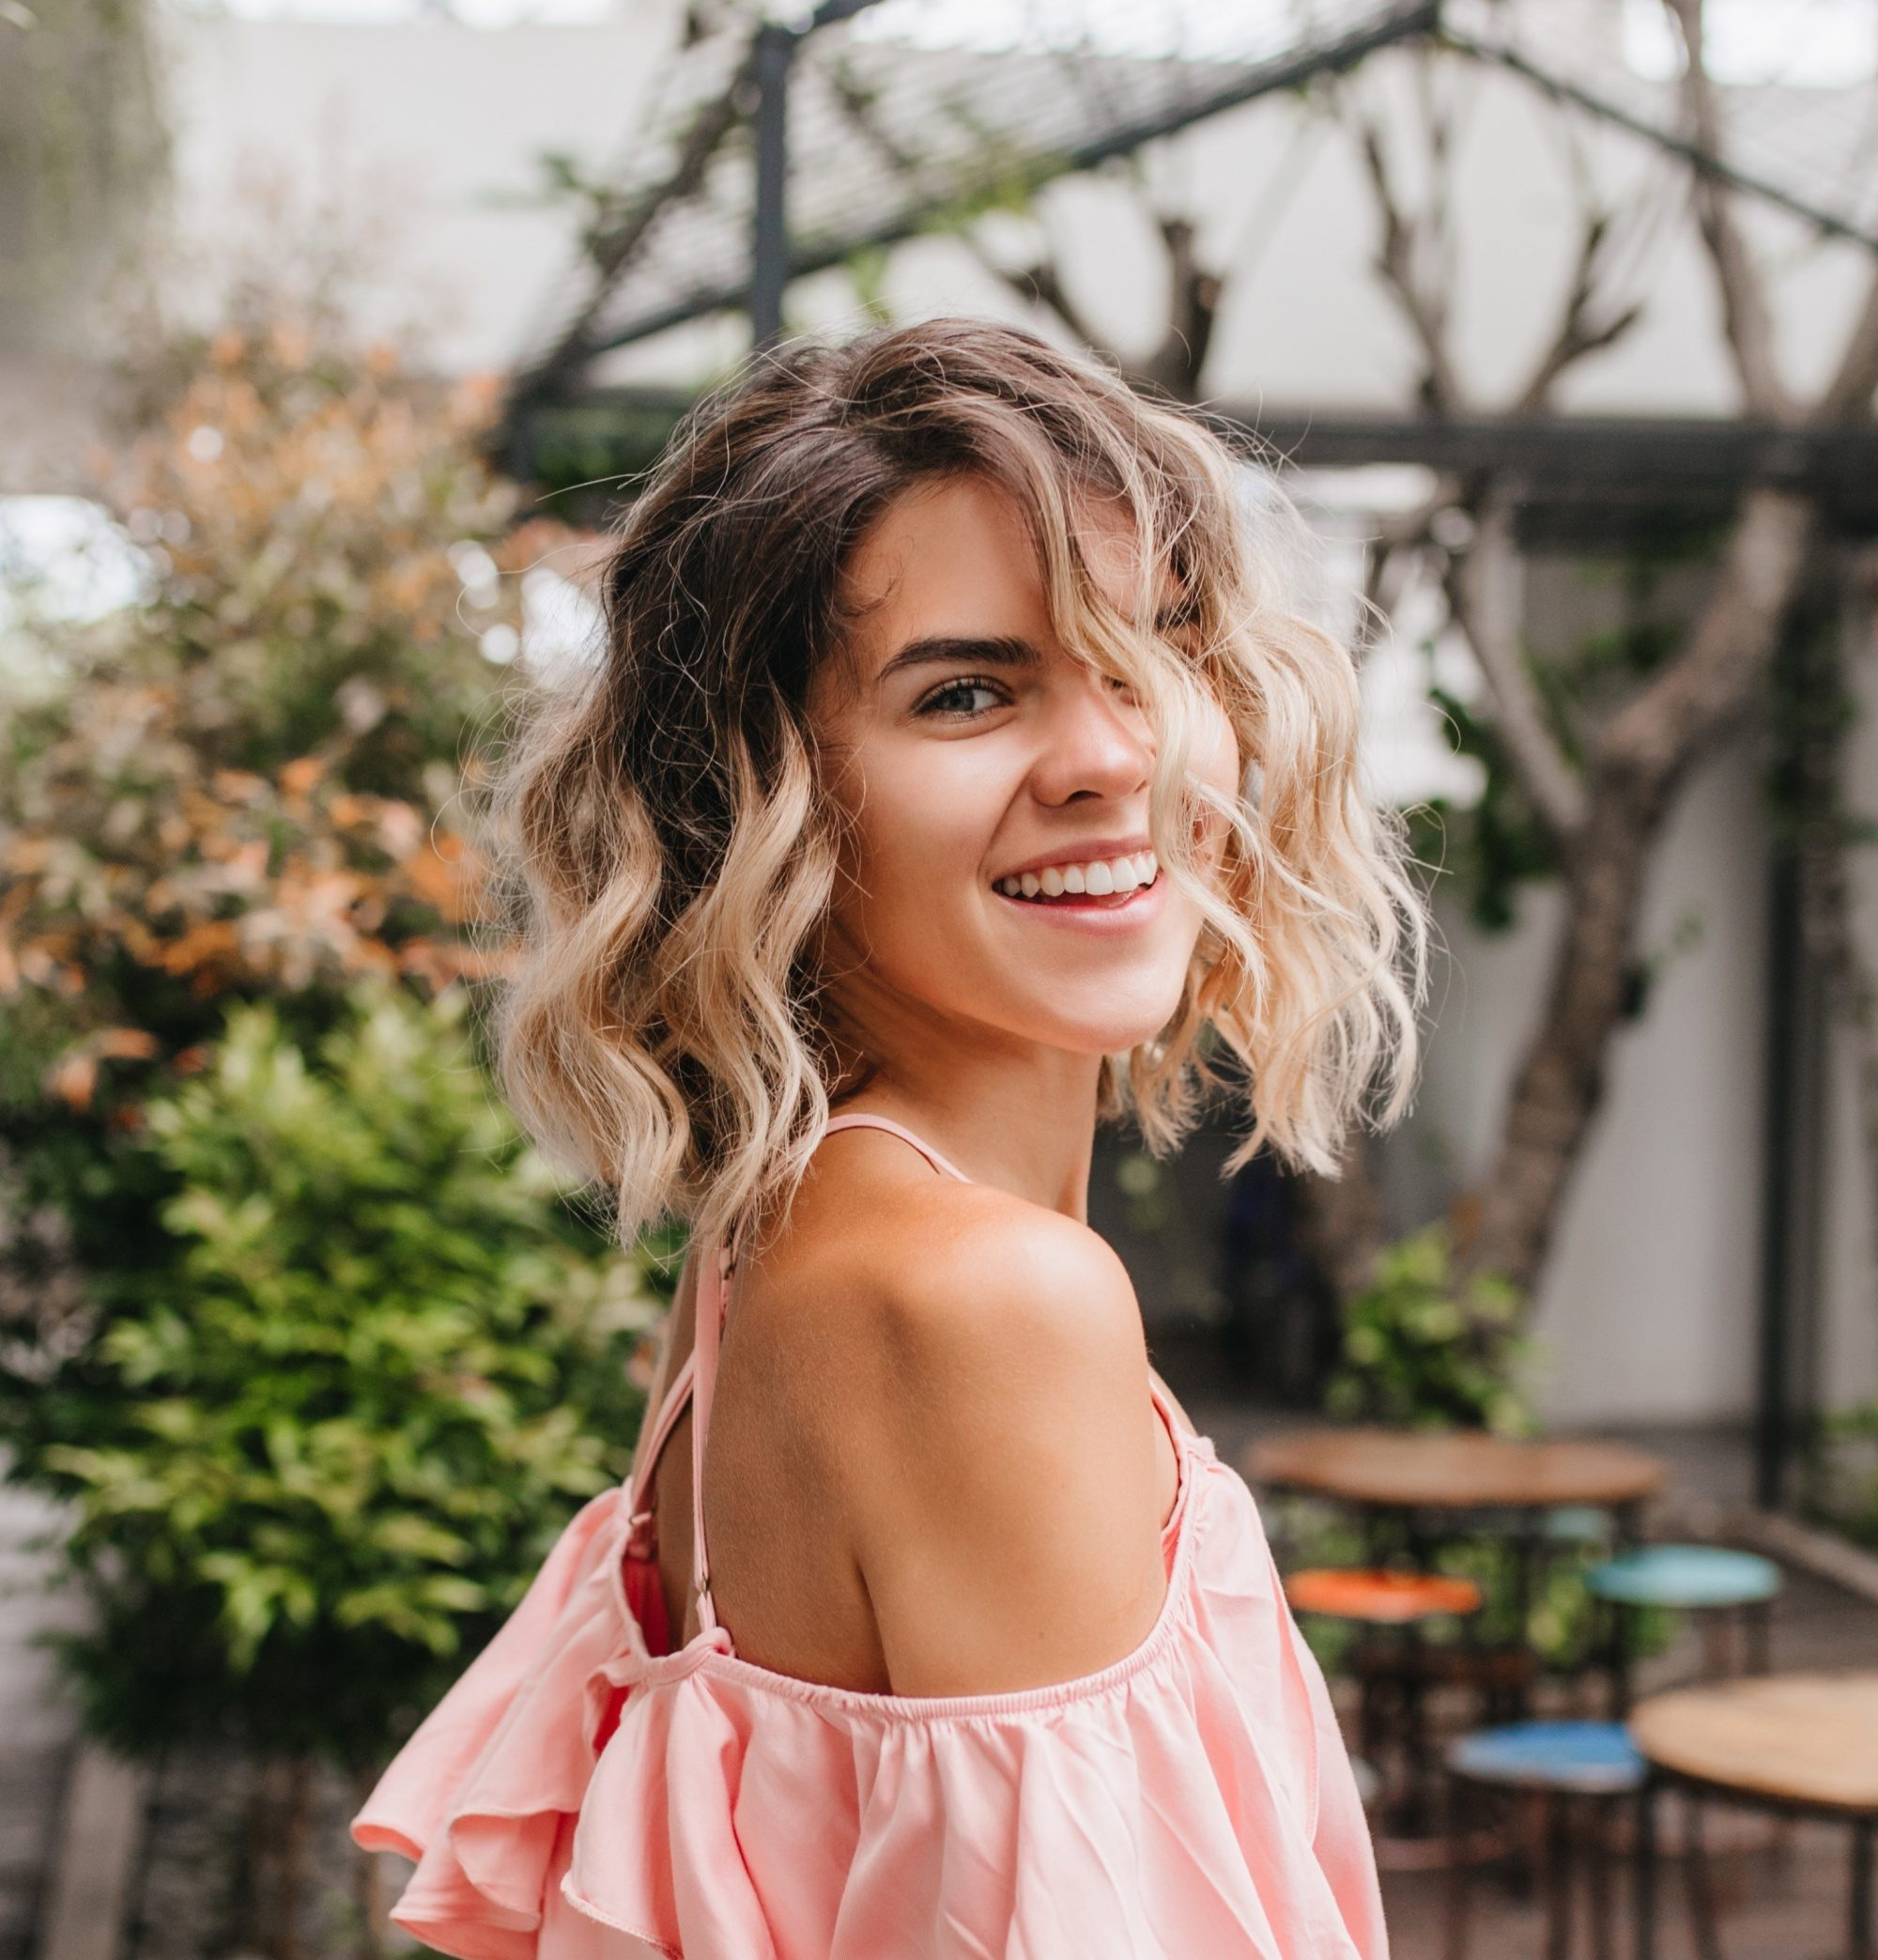 Hair Color For Curly Hair: 10 Ideas To Level Up Your 'do Regarding Fashionable Plum Brown Pixie Haircuts For Naturally Curly Hair (View 15 of 20)